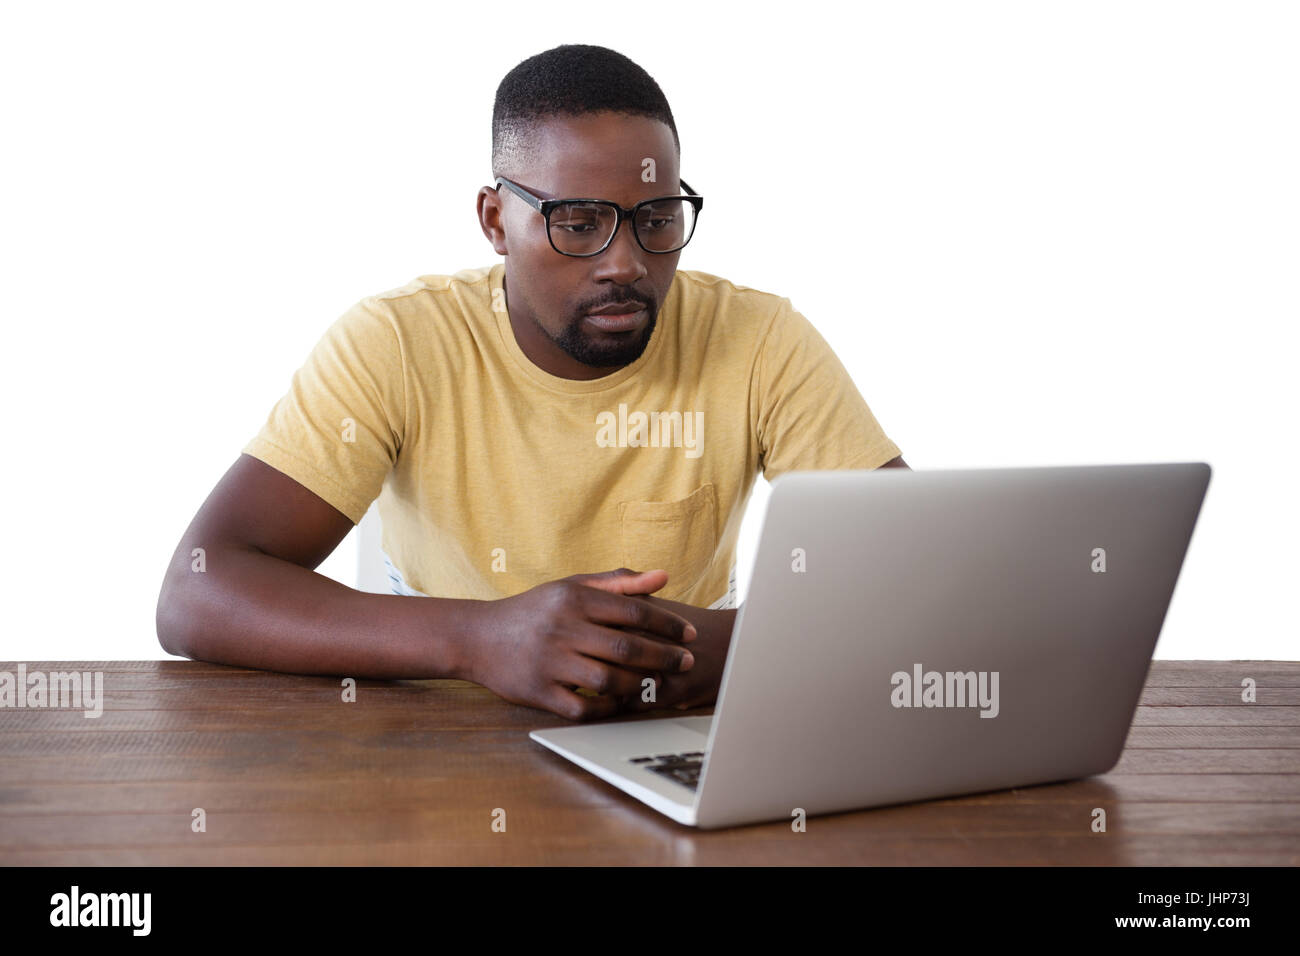 Man in spectacle using laptop against white background - Stock Image